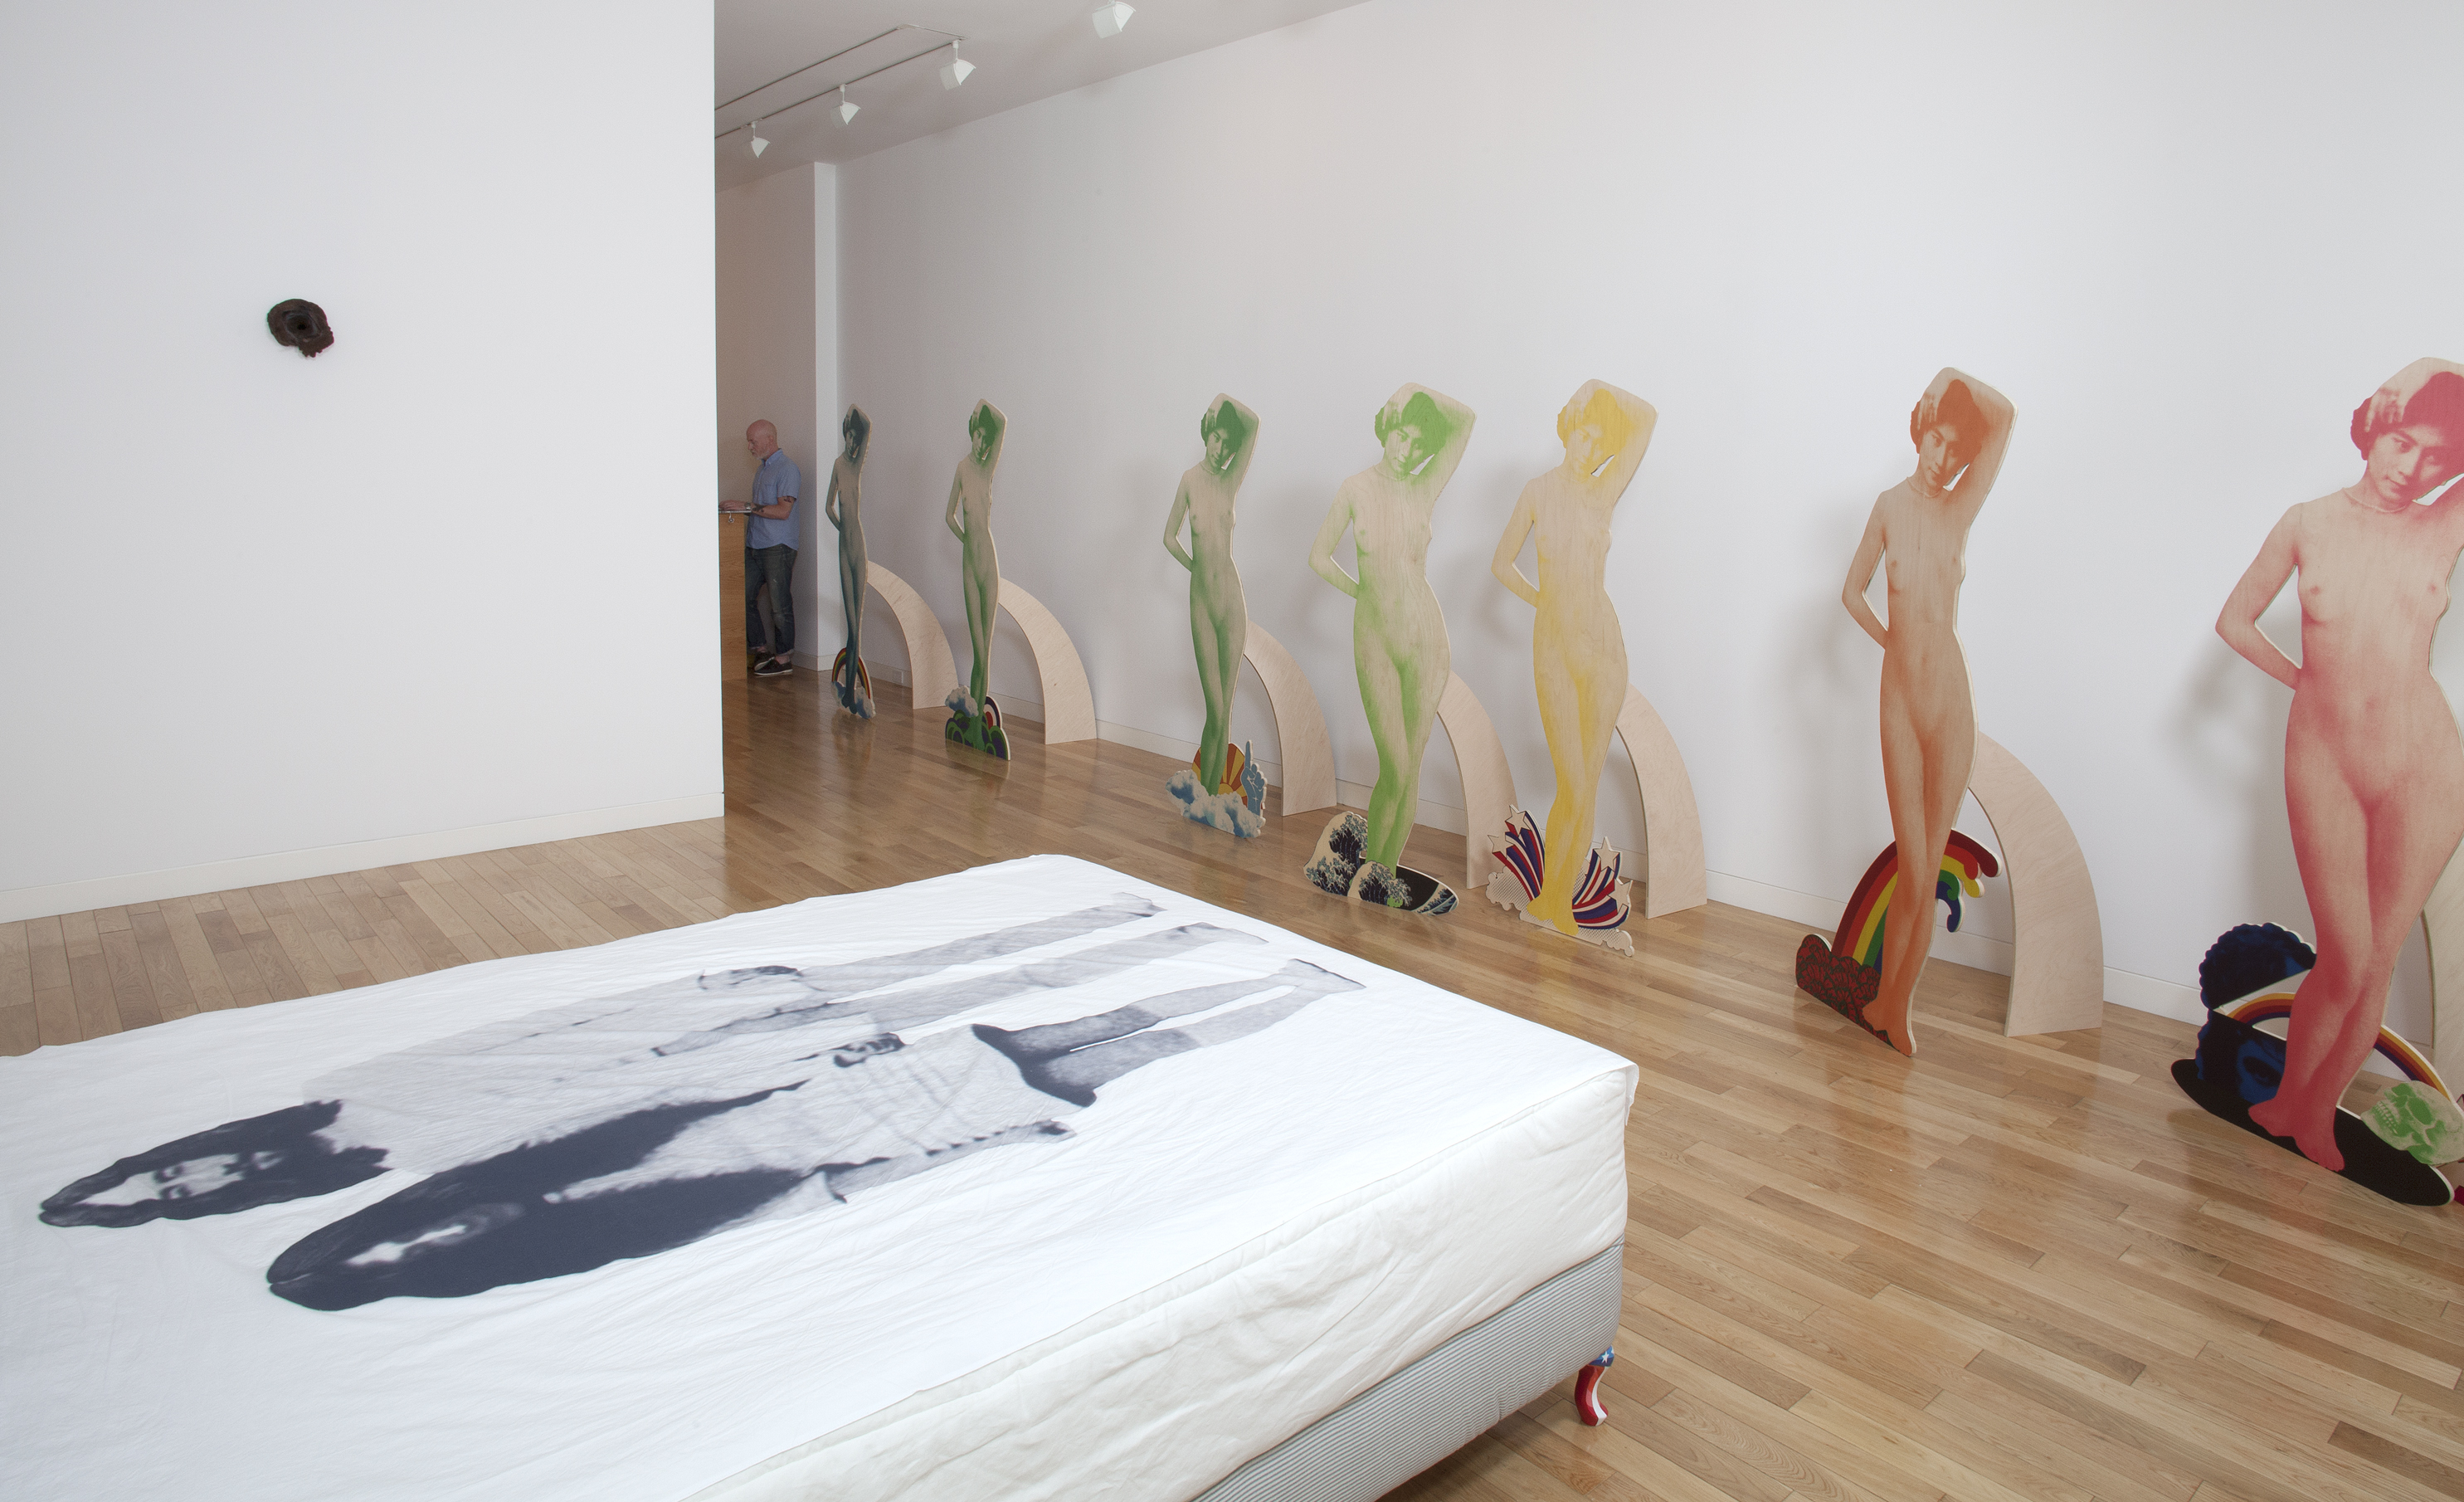 Photograph 3 from Jack Early: Gallery Peace exhibition.